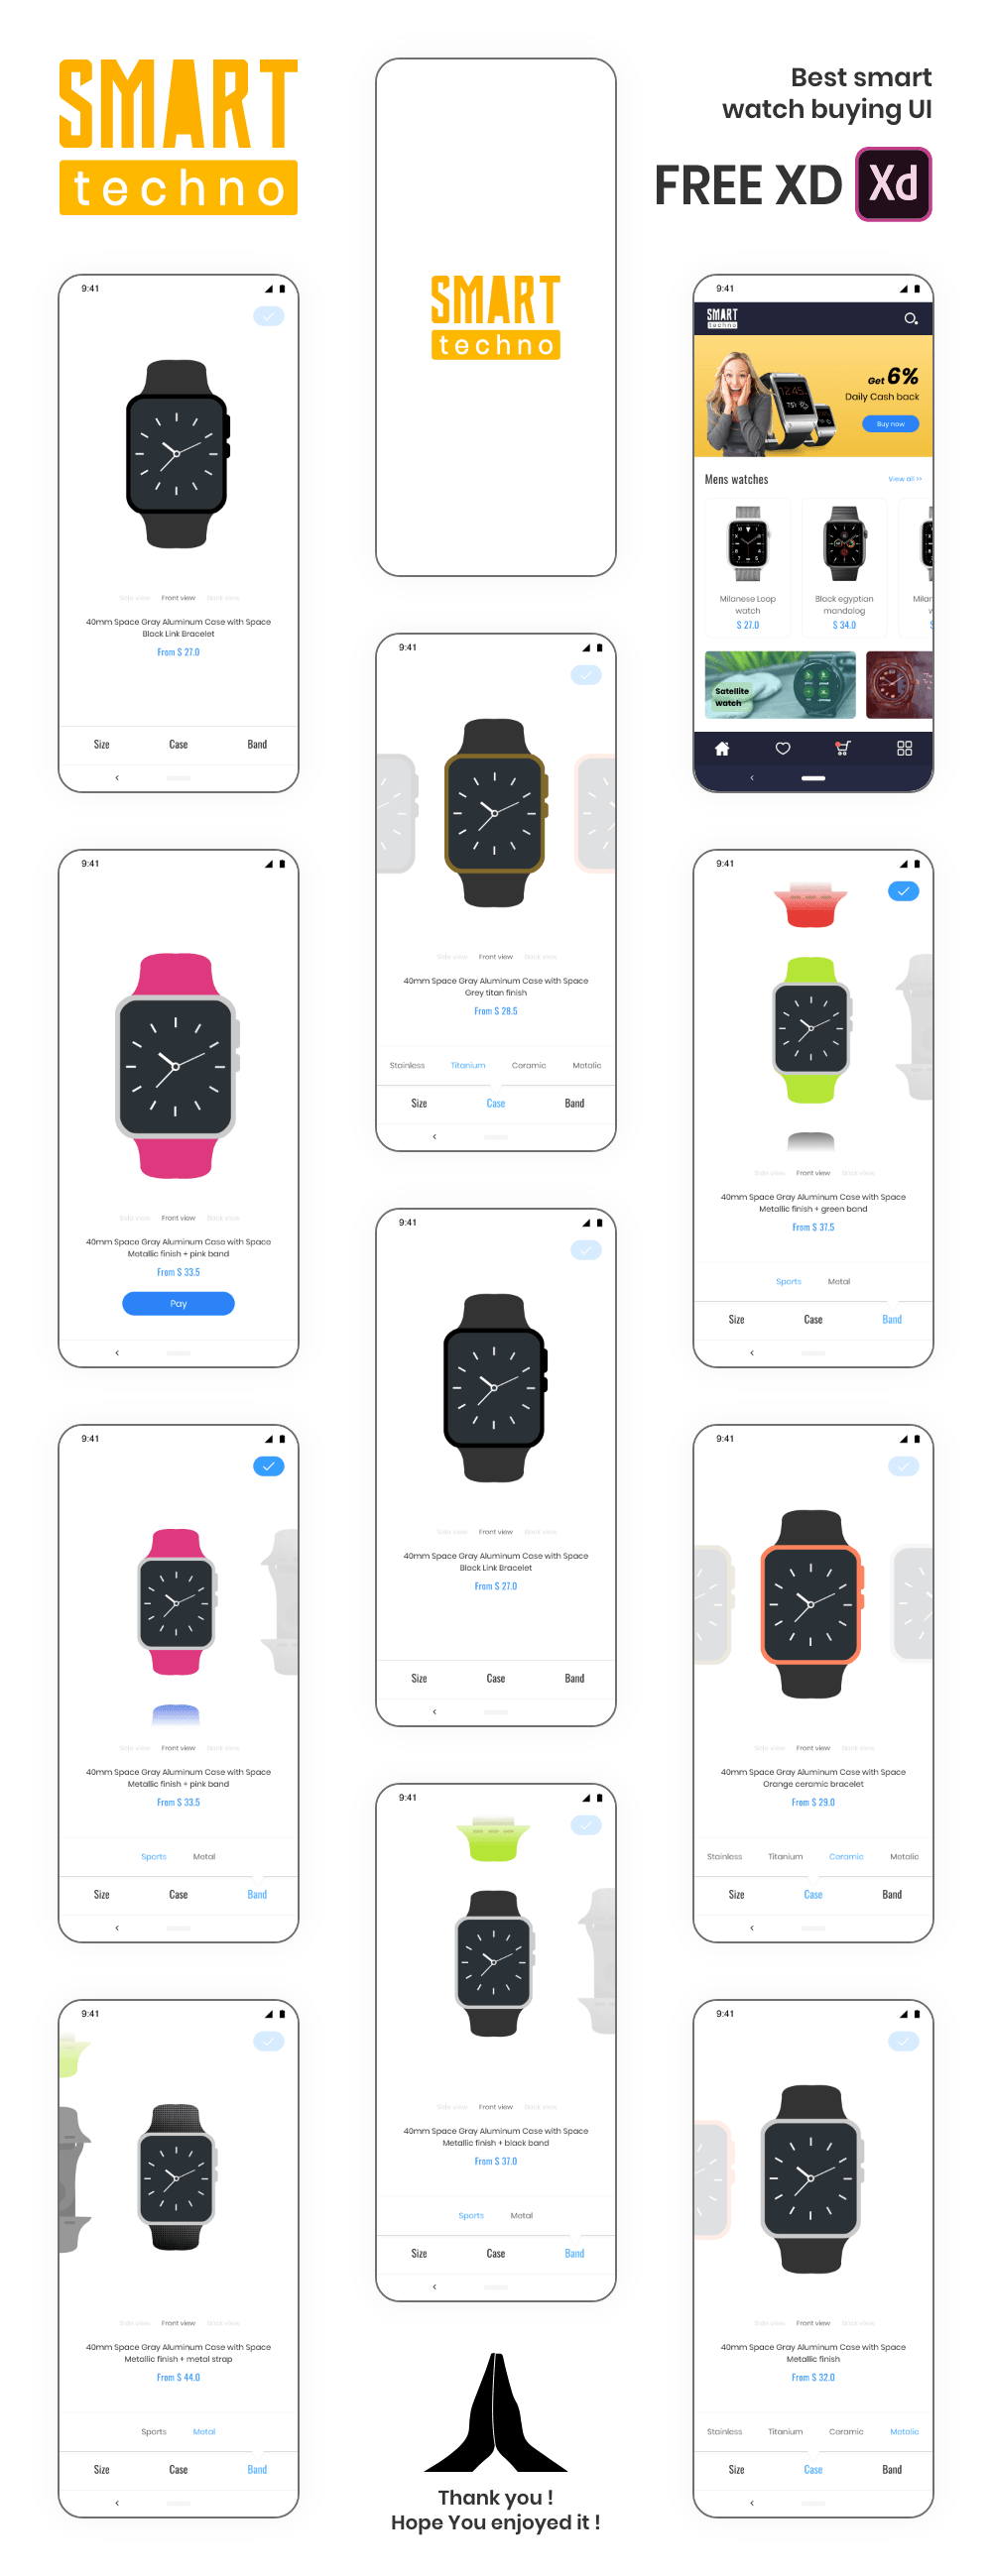 Watch buying - User friendly UI